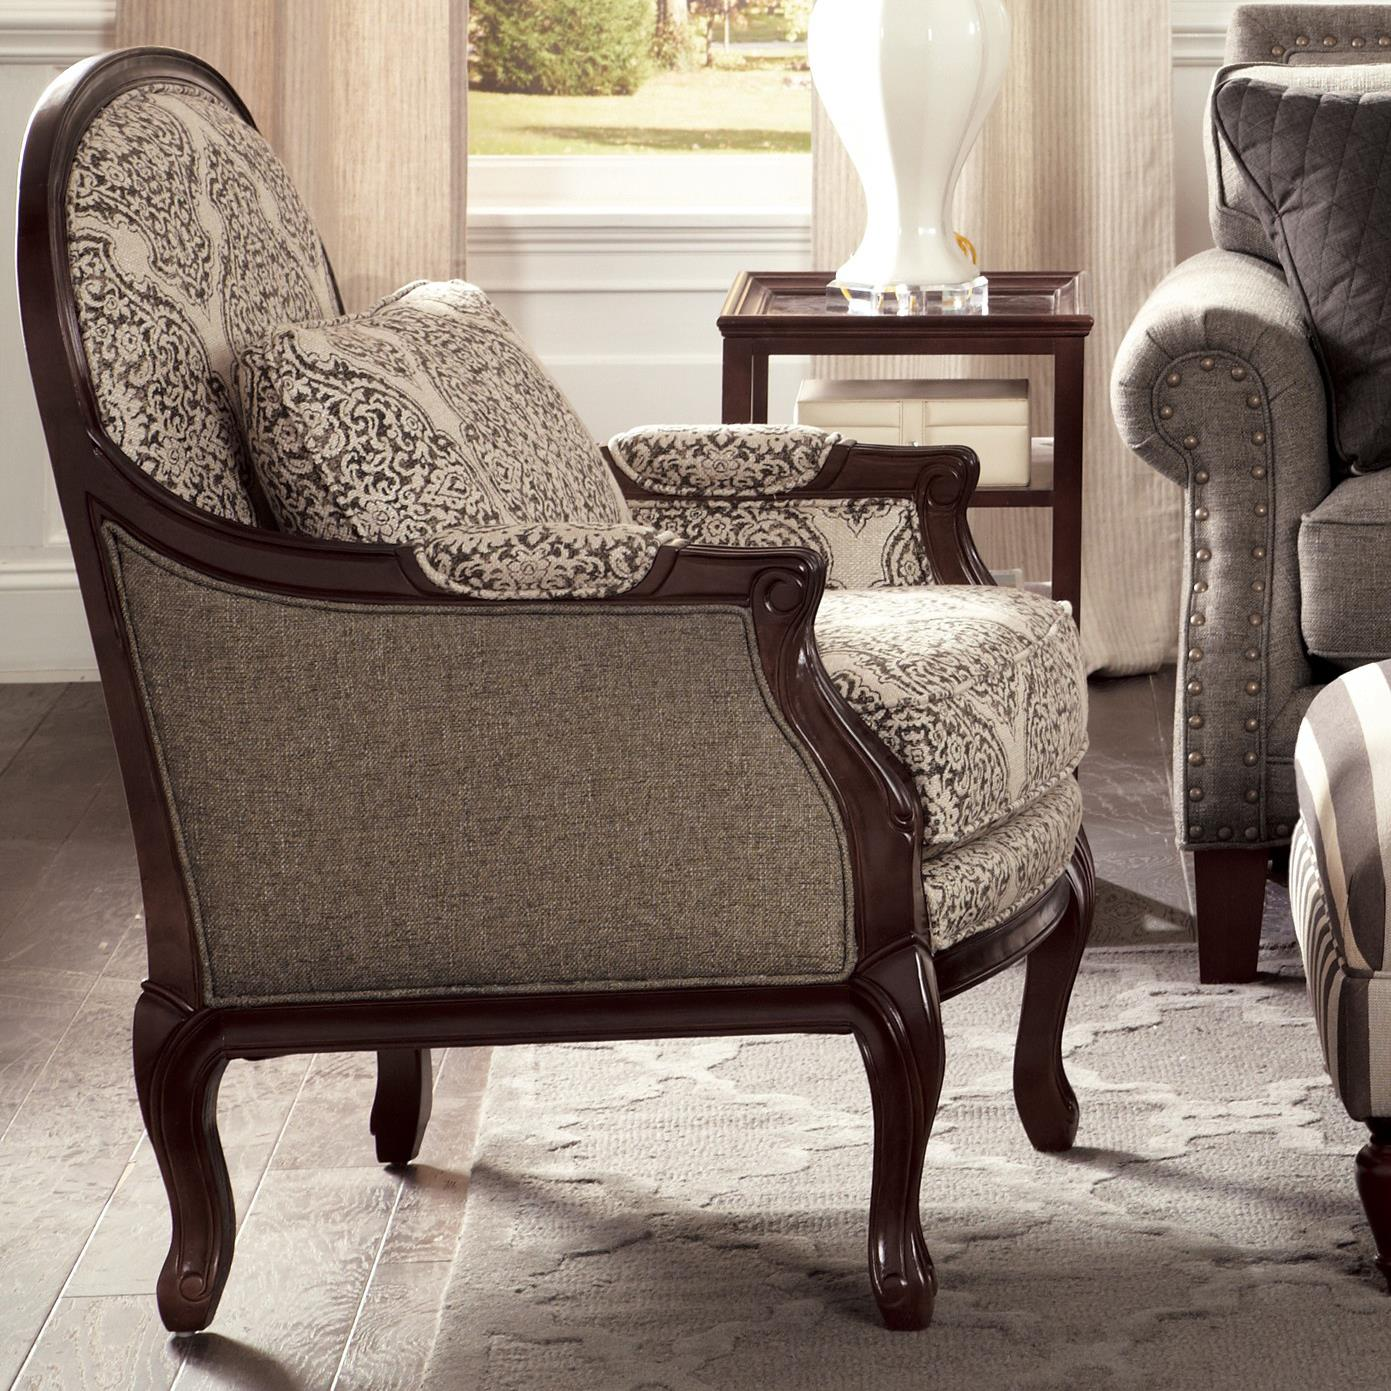 craftmaster accent chairs traditional chair with cabriole legs and